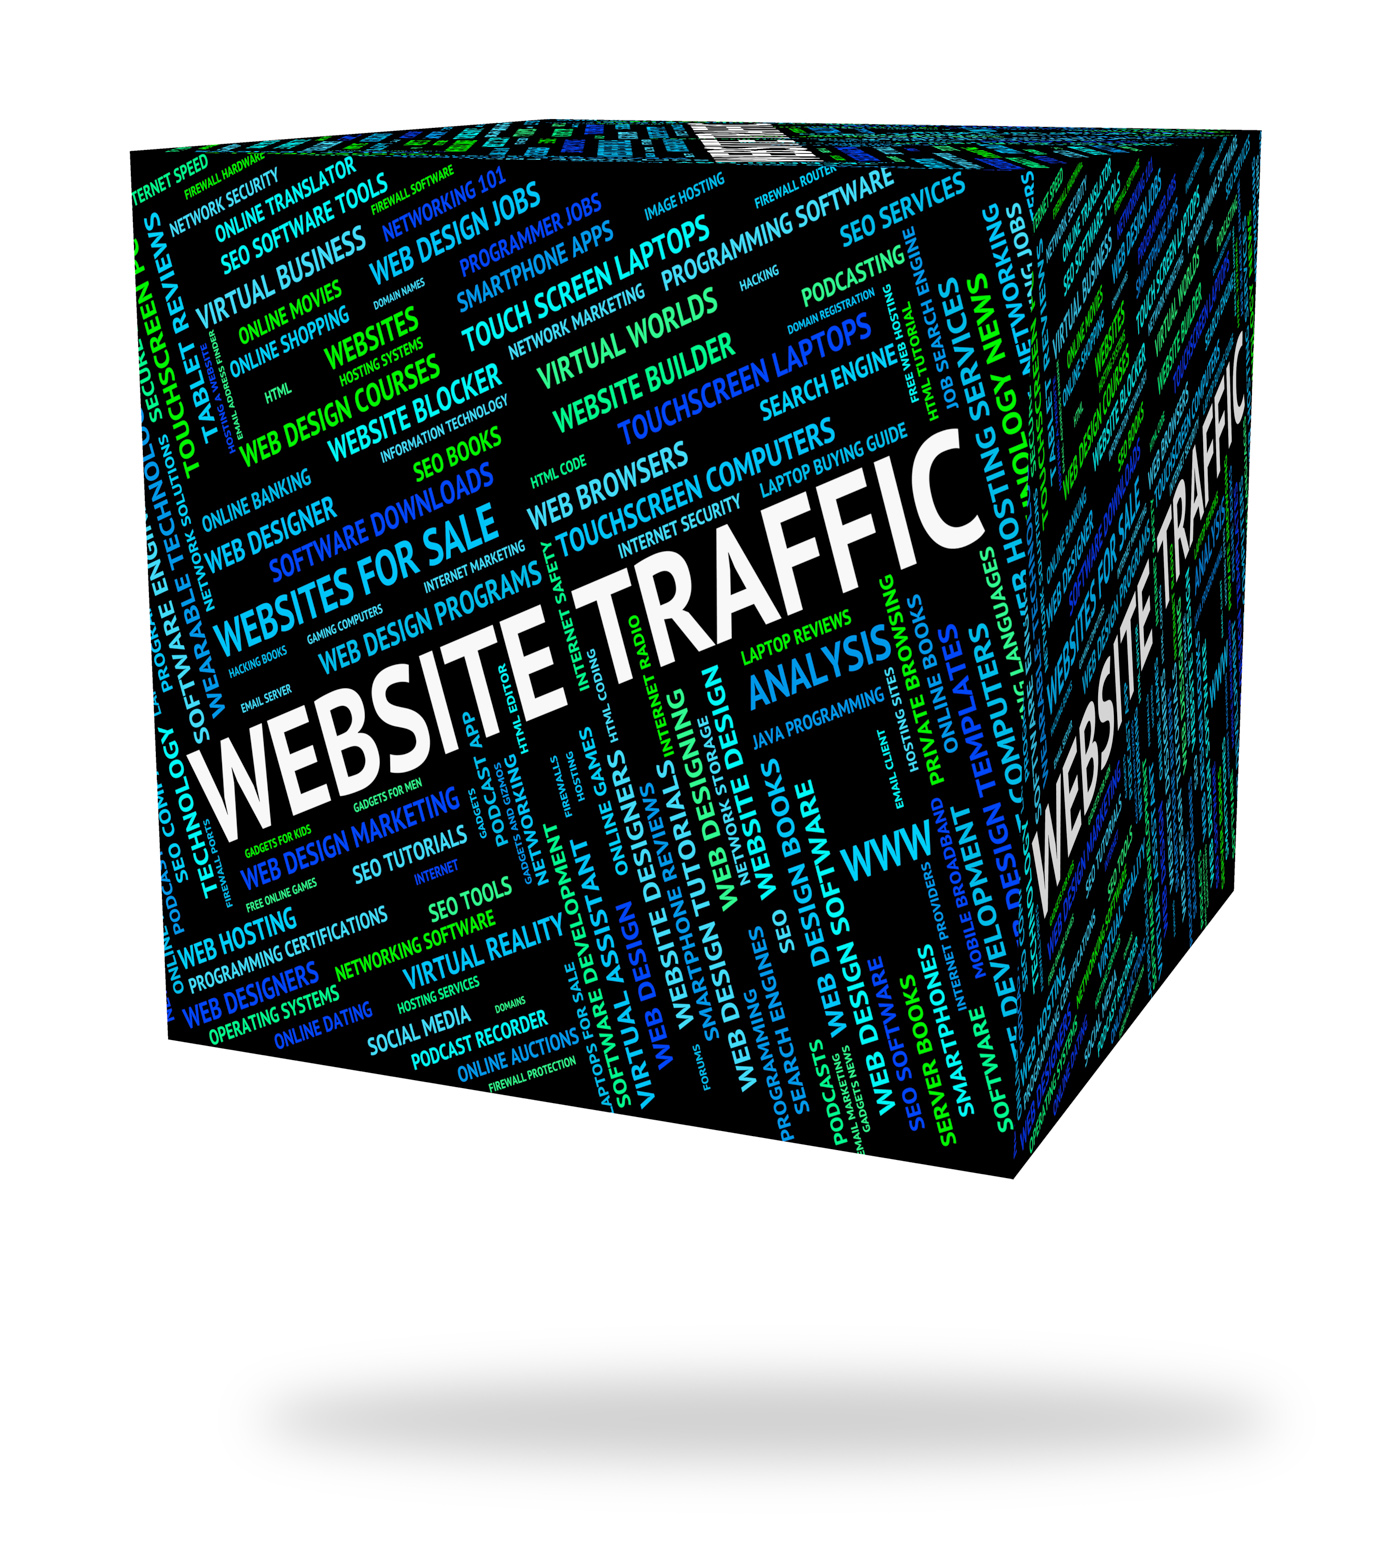 Website Traffic Means Domains Www And Words, Customer, Customers, Domain, Domains, HQ Photo